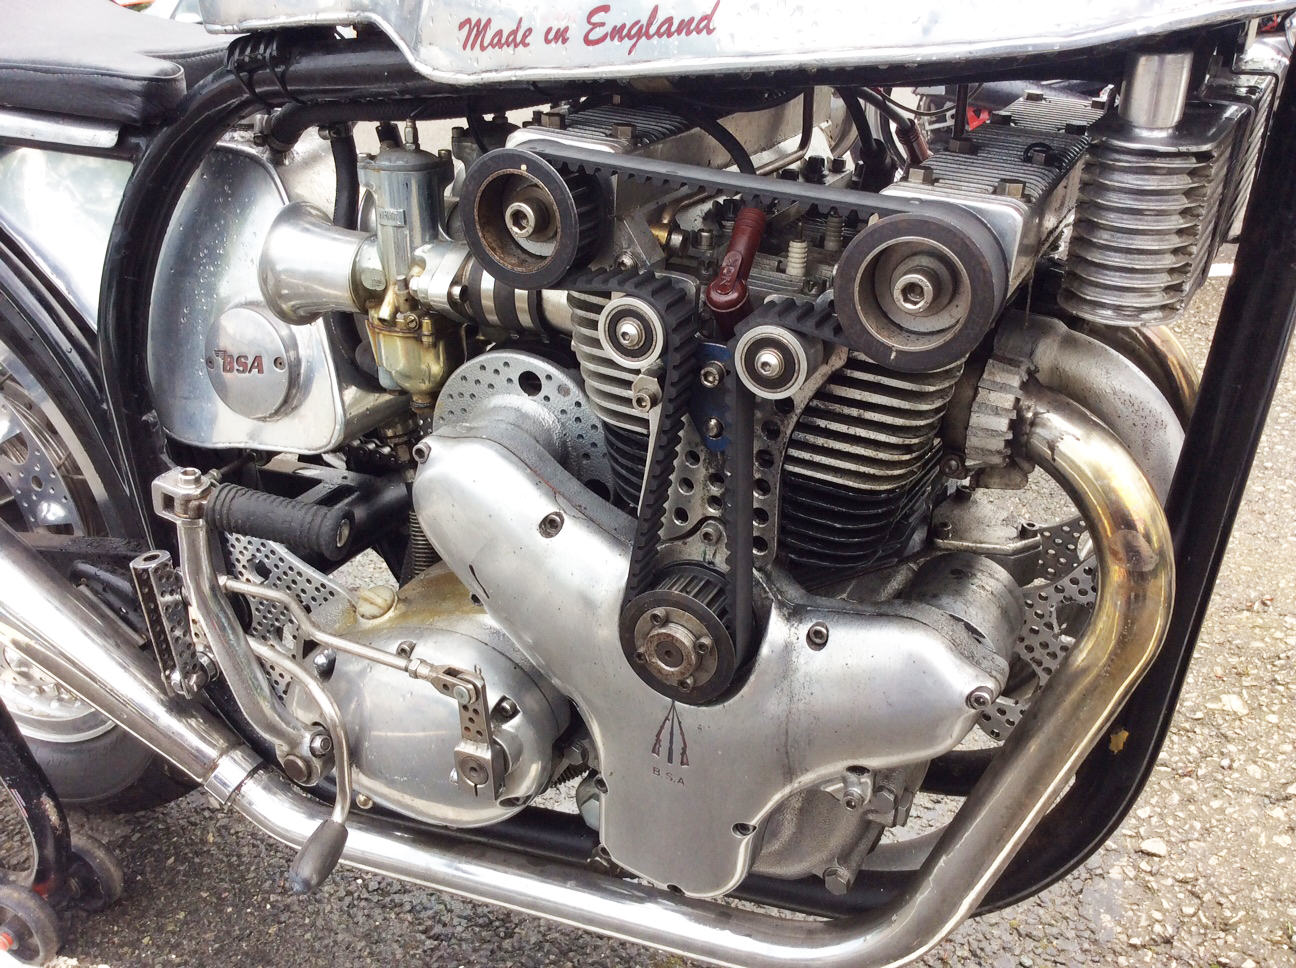 George Pooleys Hand Built Specials Johns Motorcycle News